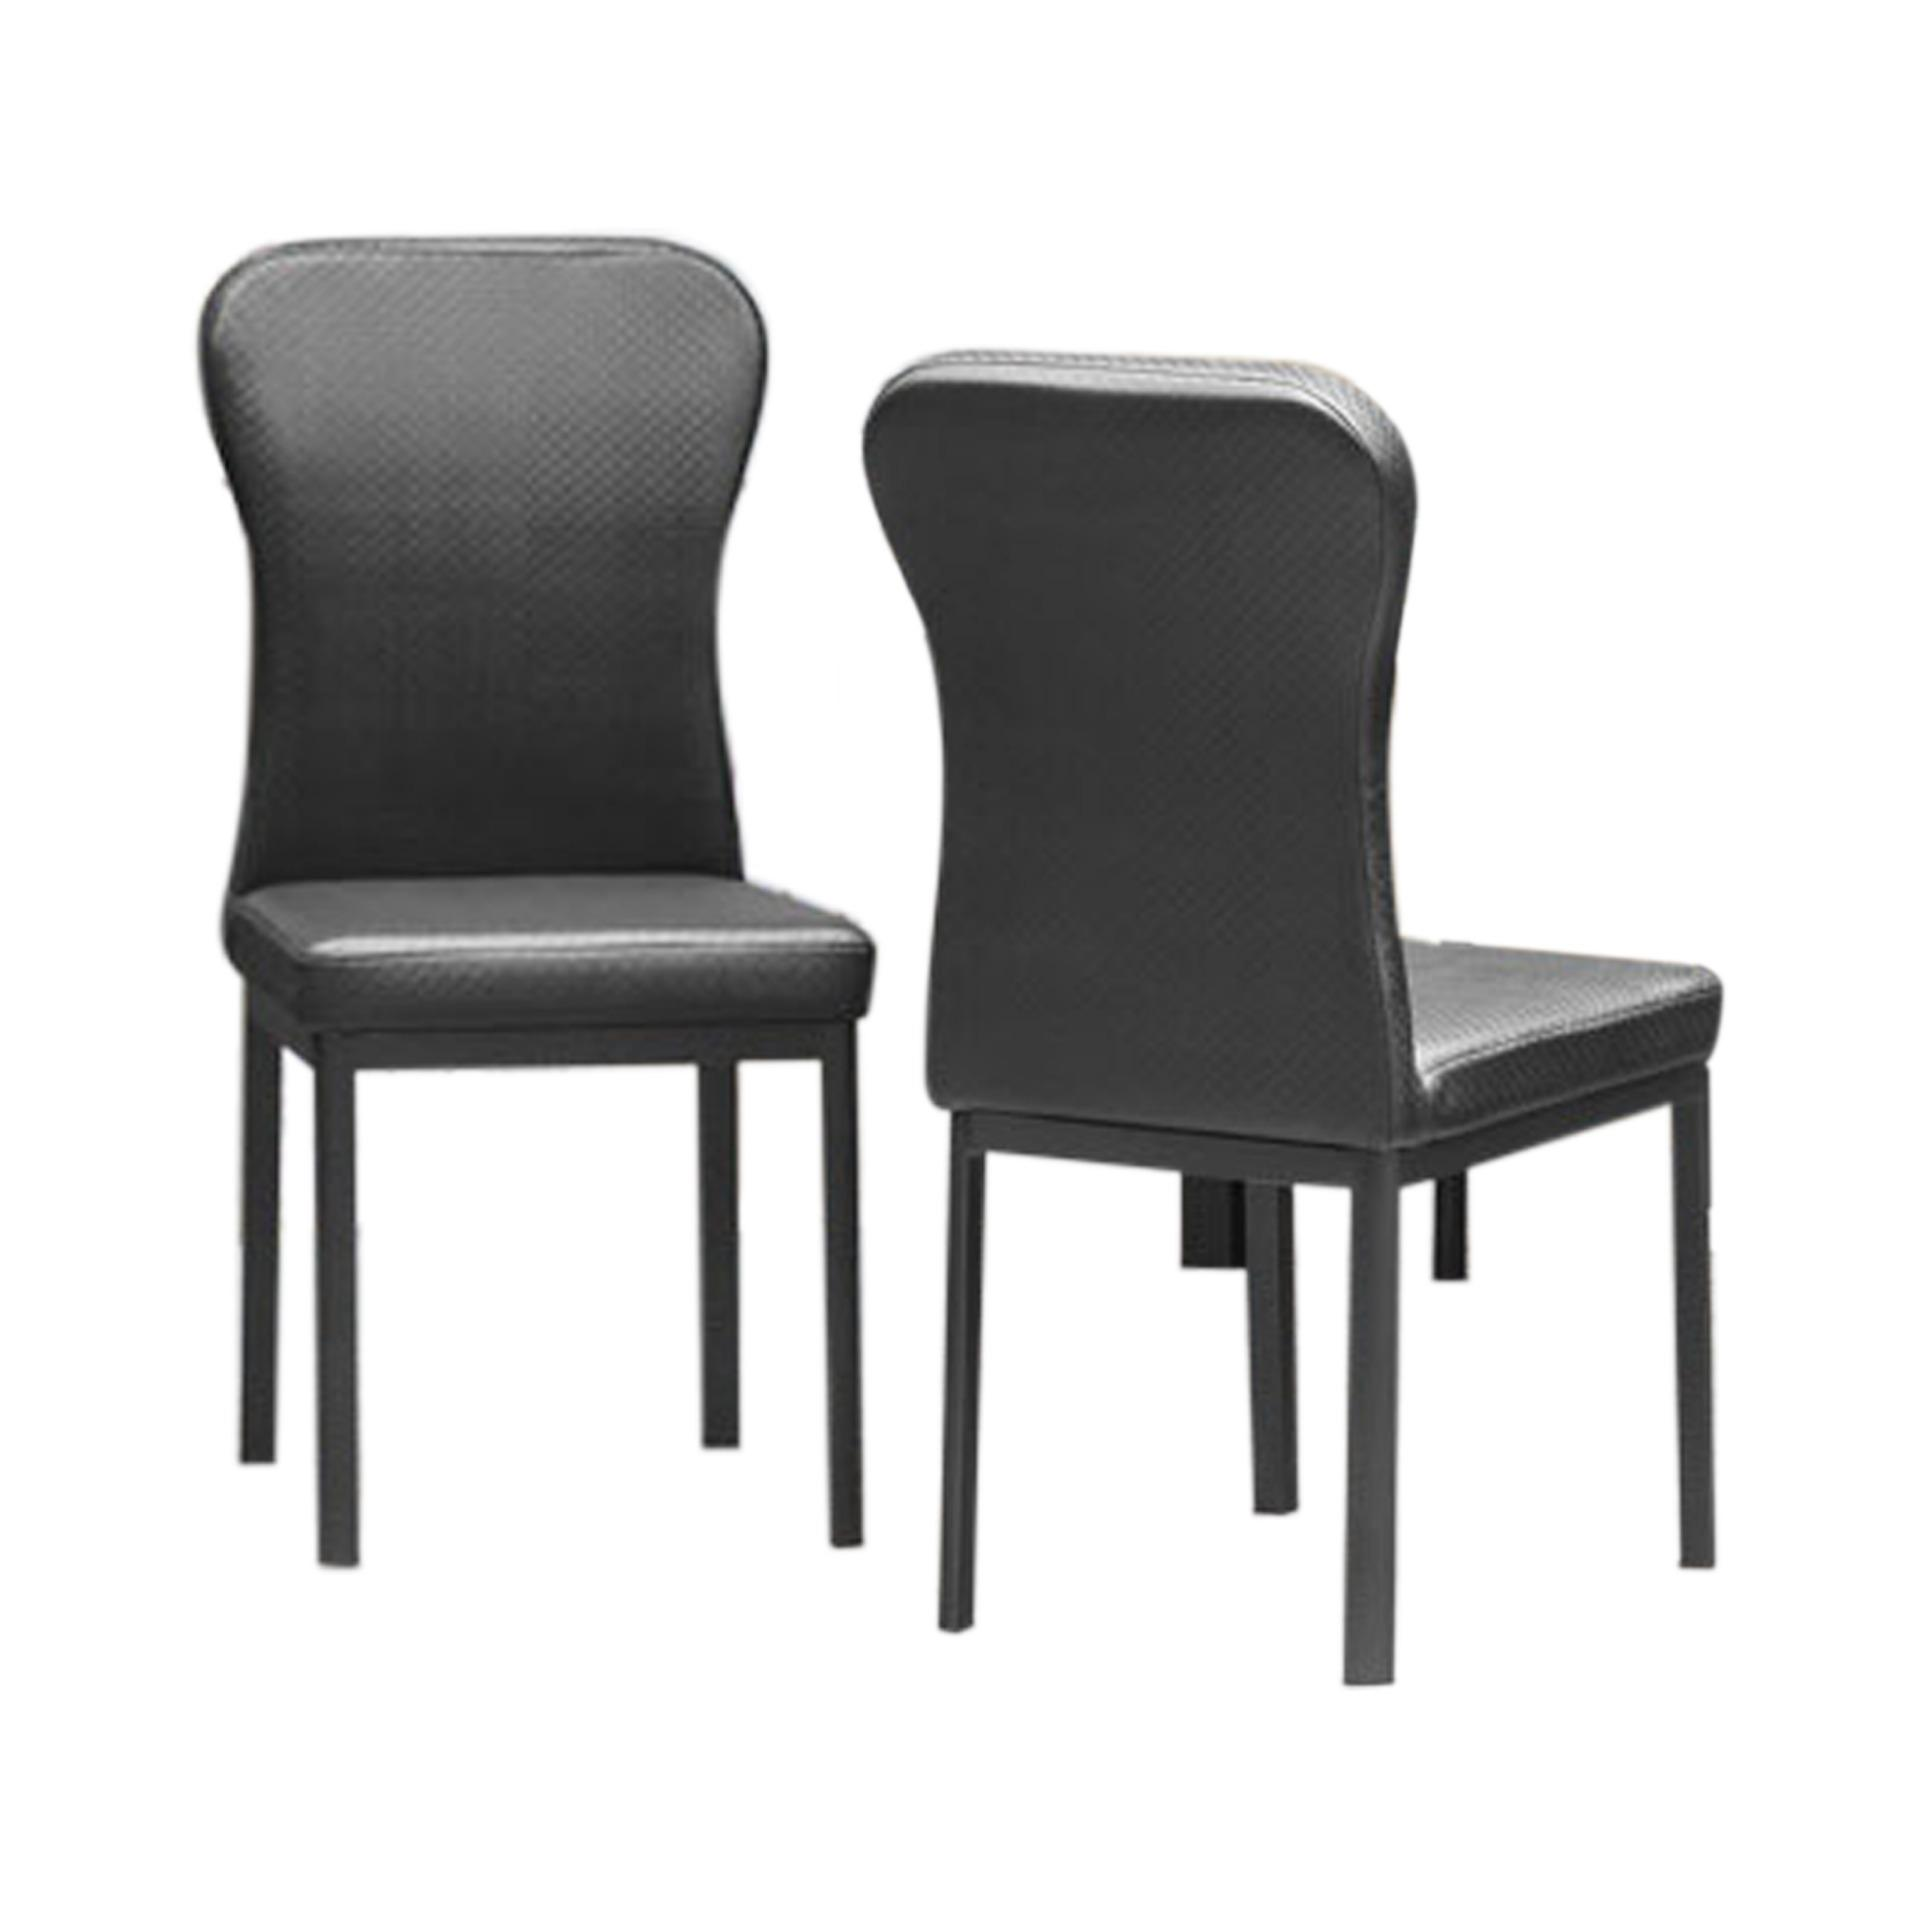 Silke Dining Chair_Set of 2 (FREE DELIVERY)(FREE ASSEMBLY)